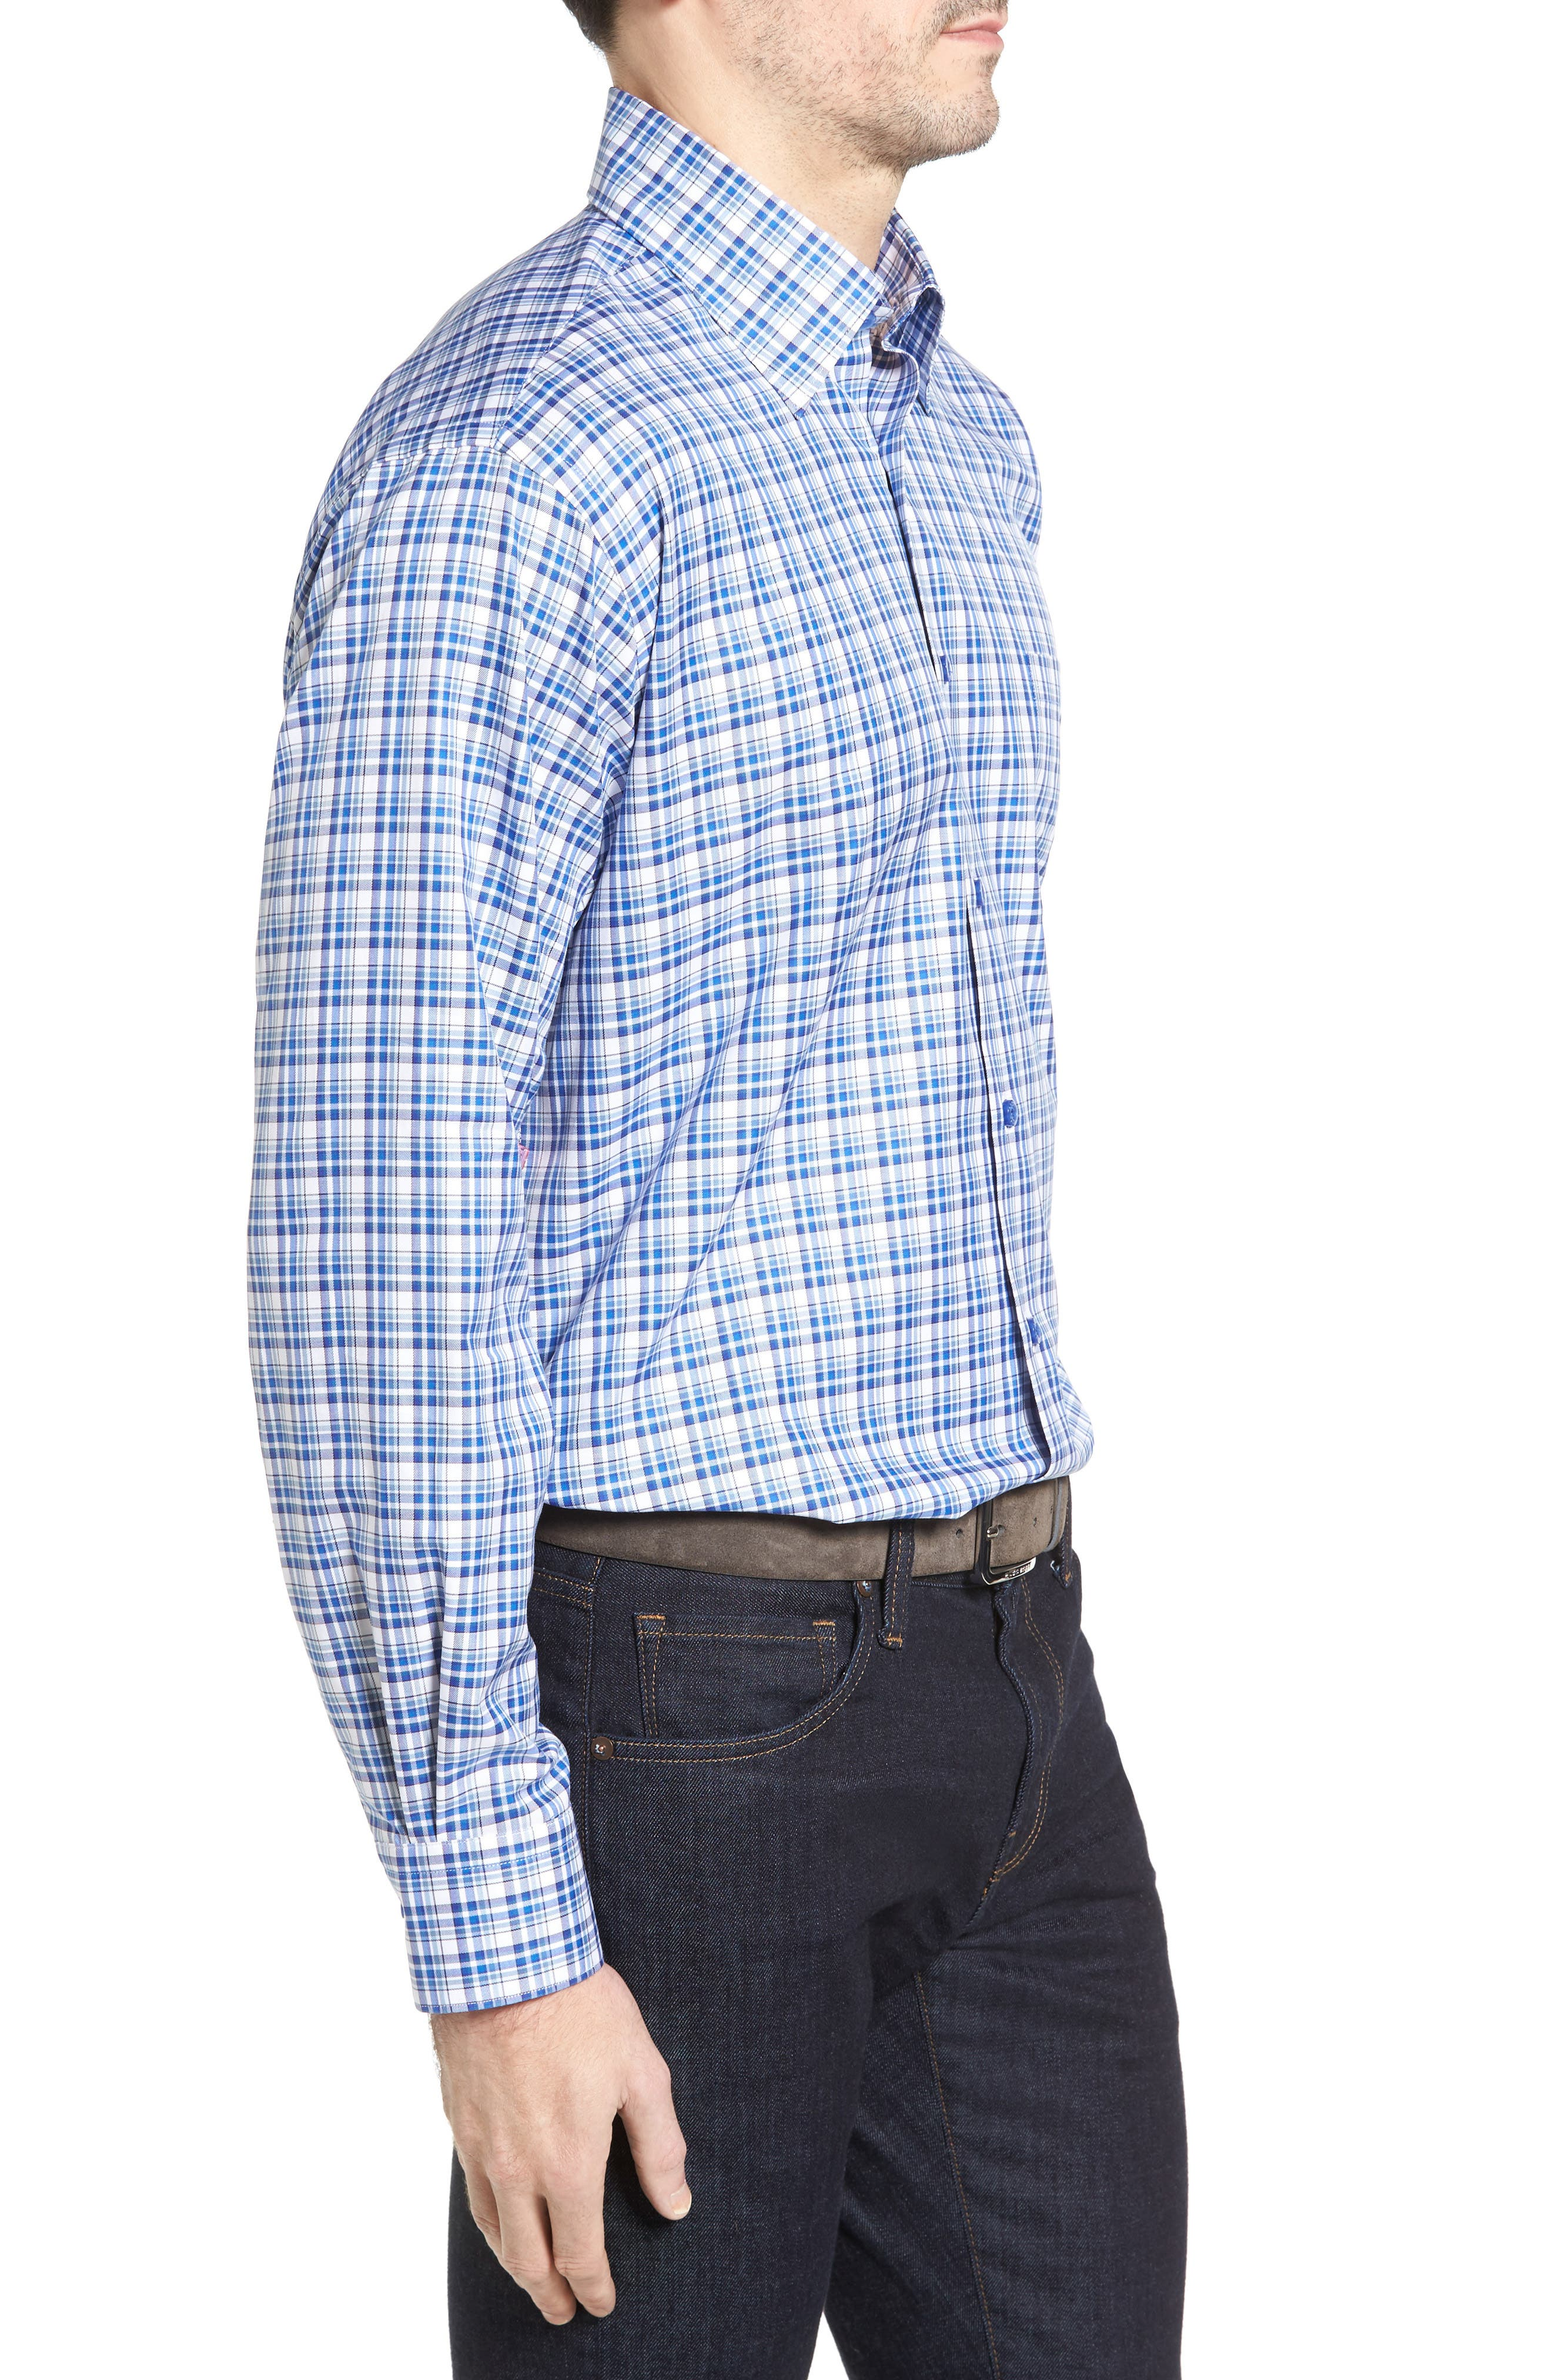 Anderson Classic Fit Plaid Micro Twill Sport Shirt,                             Alternate thumbnail 3, color,                             417